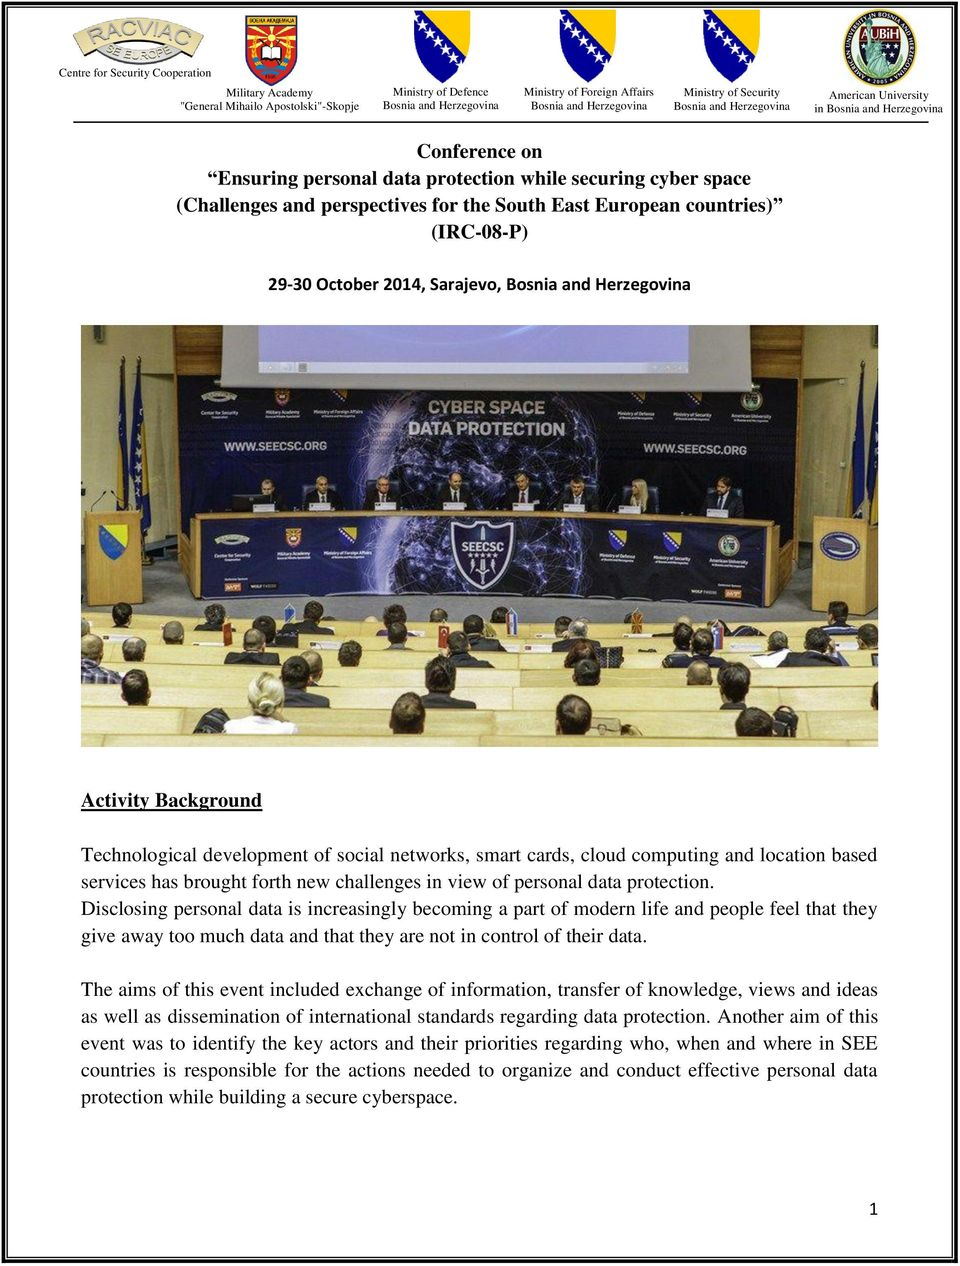 European countries) (IRC-08-P) 29-30 October 2014, Sarajevo, Bosnia and Herzegovina Activity Background Technological development of social networks, smart cards, cloud computing and location based